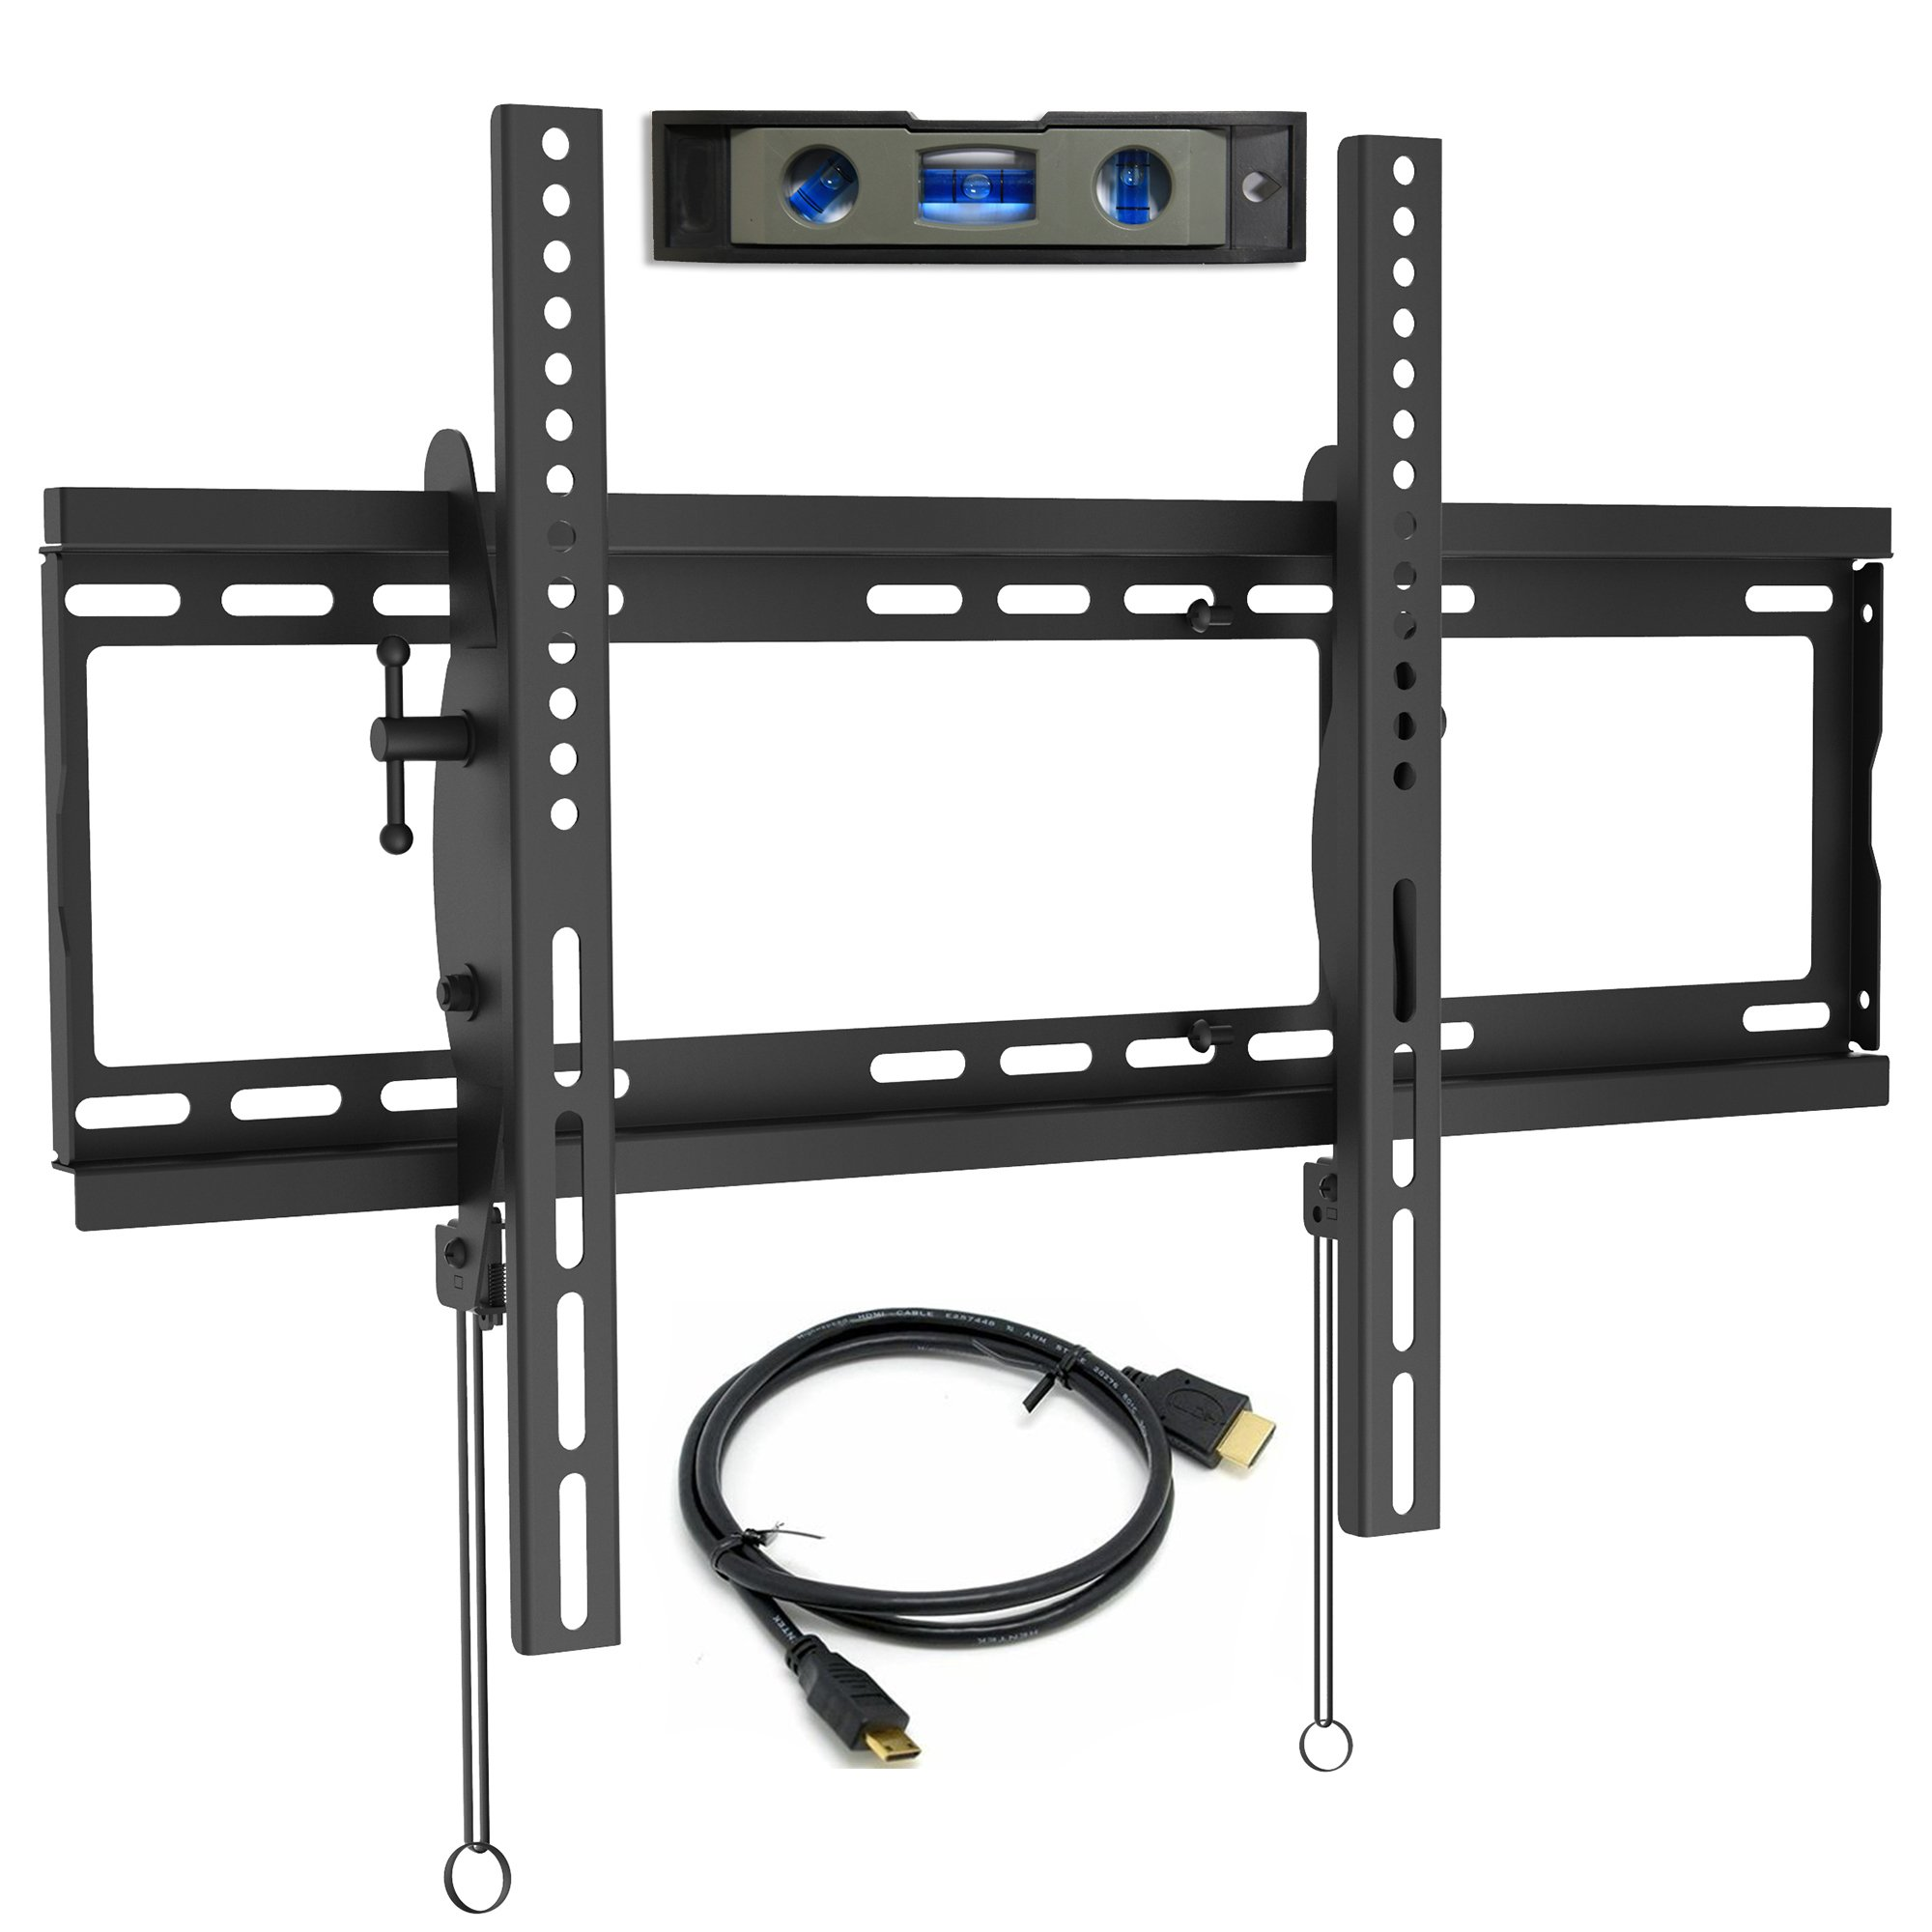 Everstone TV Wall Mount Tilting for 32-75'' LED,LCD and Plasma Flat Screen TVs,Curved TV,Low Profile Bracket up to VESA 600x400mm and 165 LBS,fits 16'' and 24'' Wall Studs,with HDMI Cable & Bubble Level